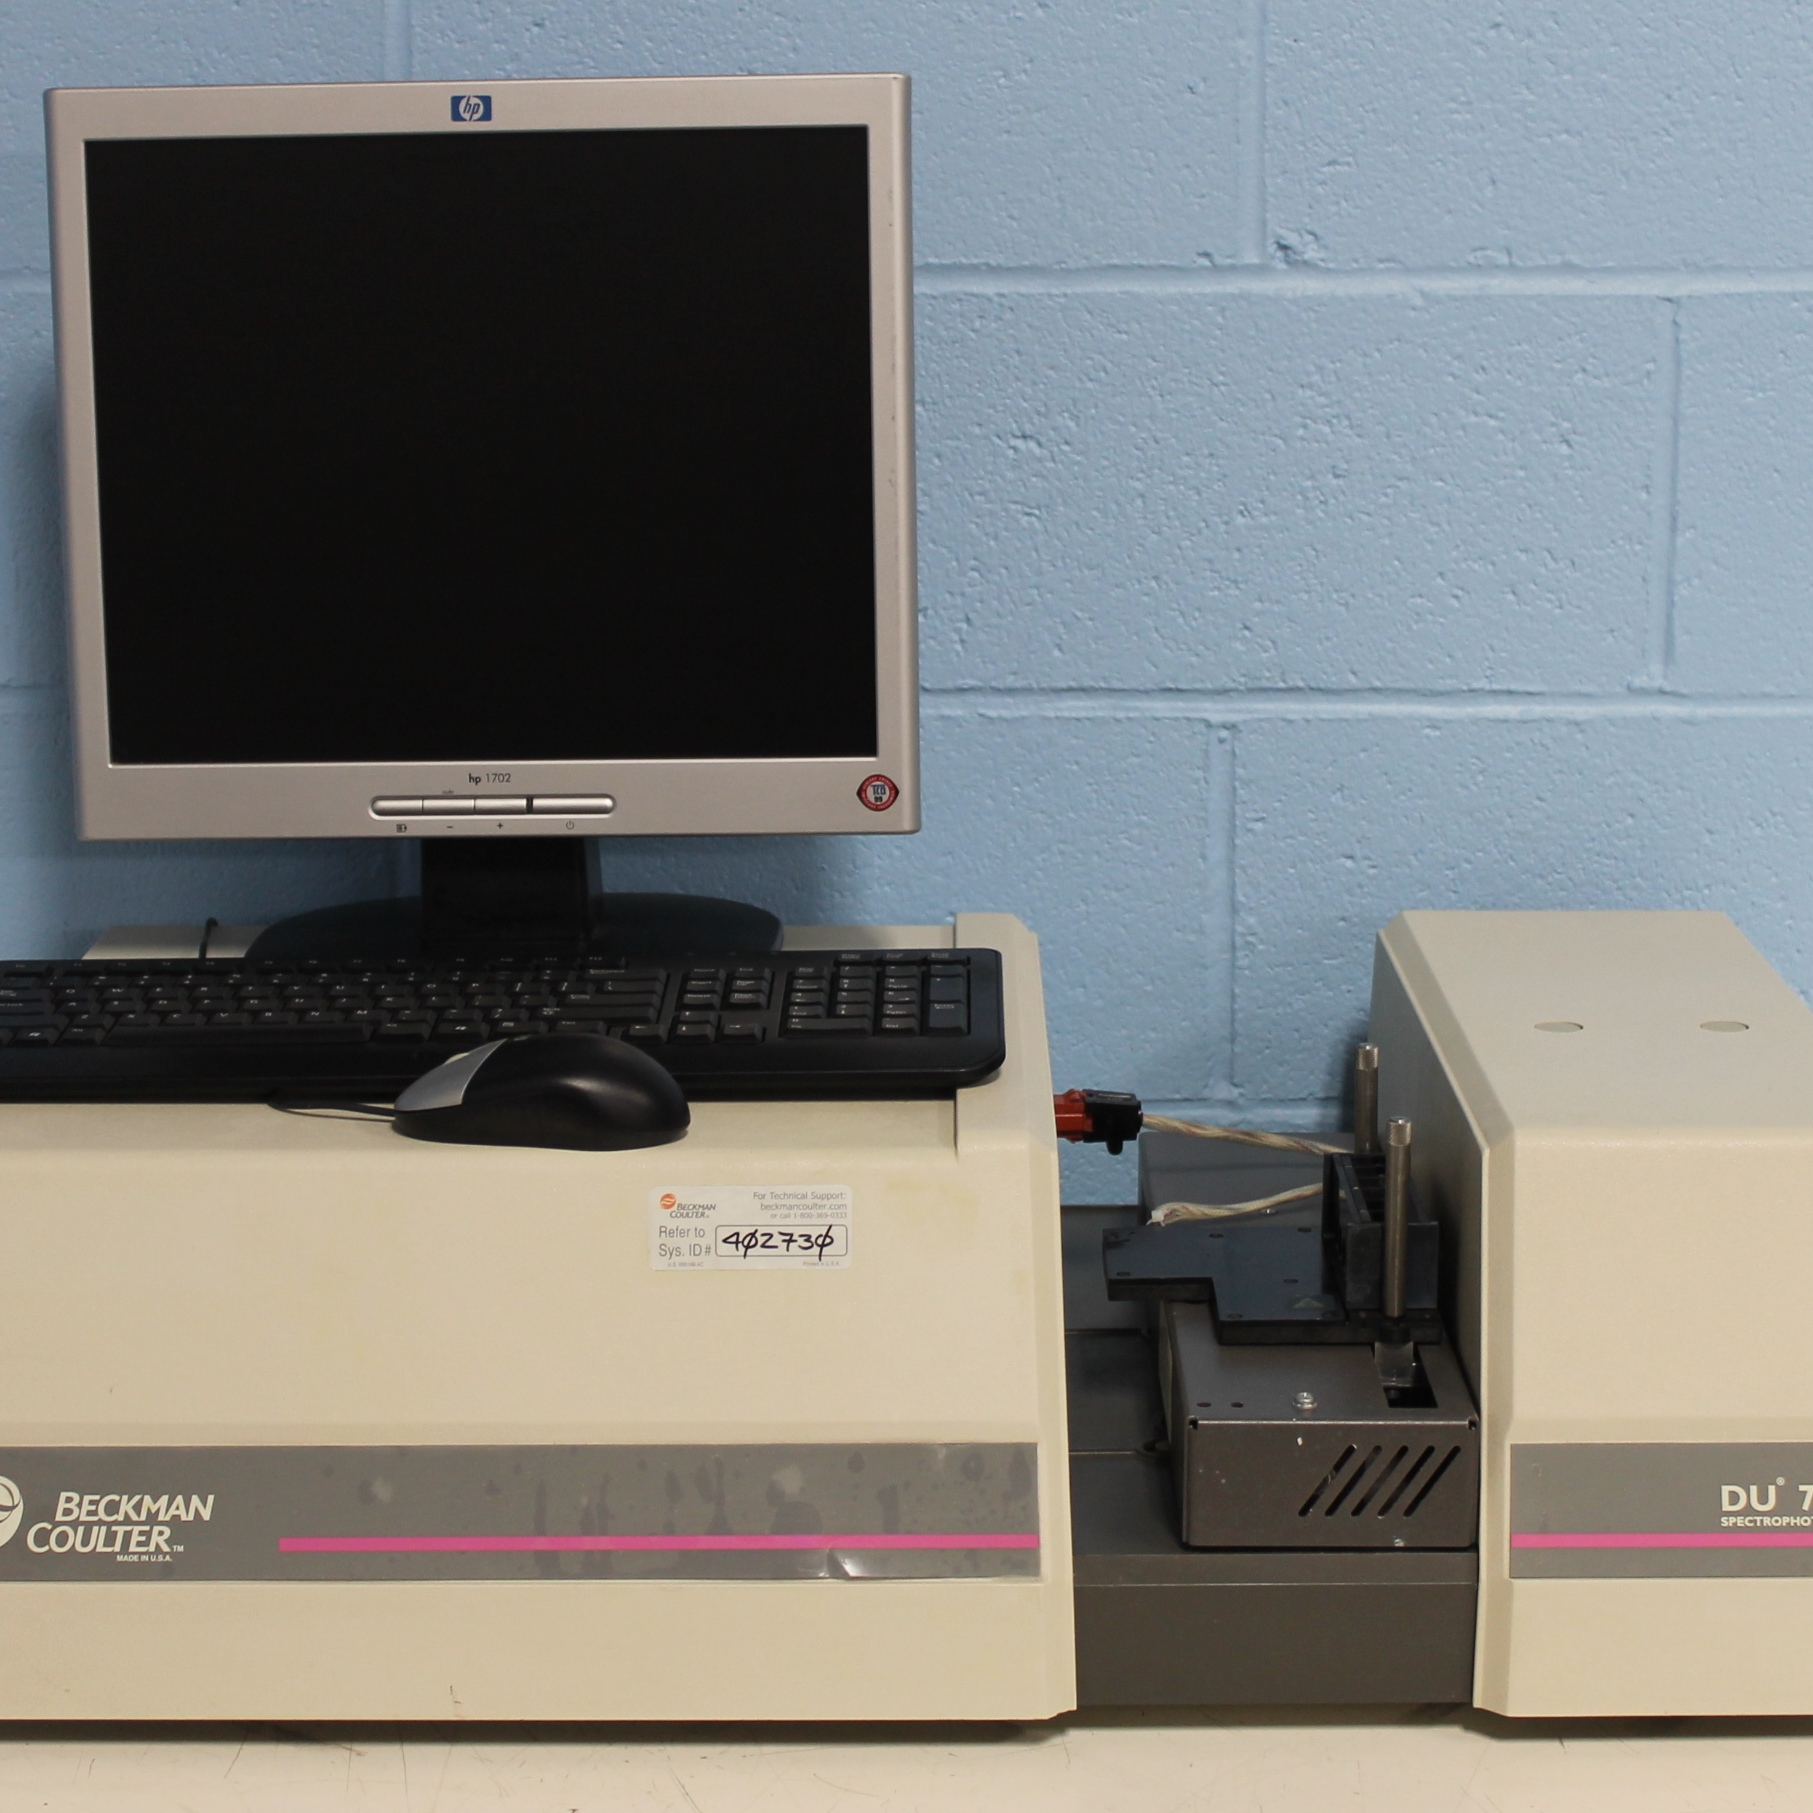 Beckman Coulter DU 7400 Diode Array Spectrophotometer Image